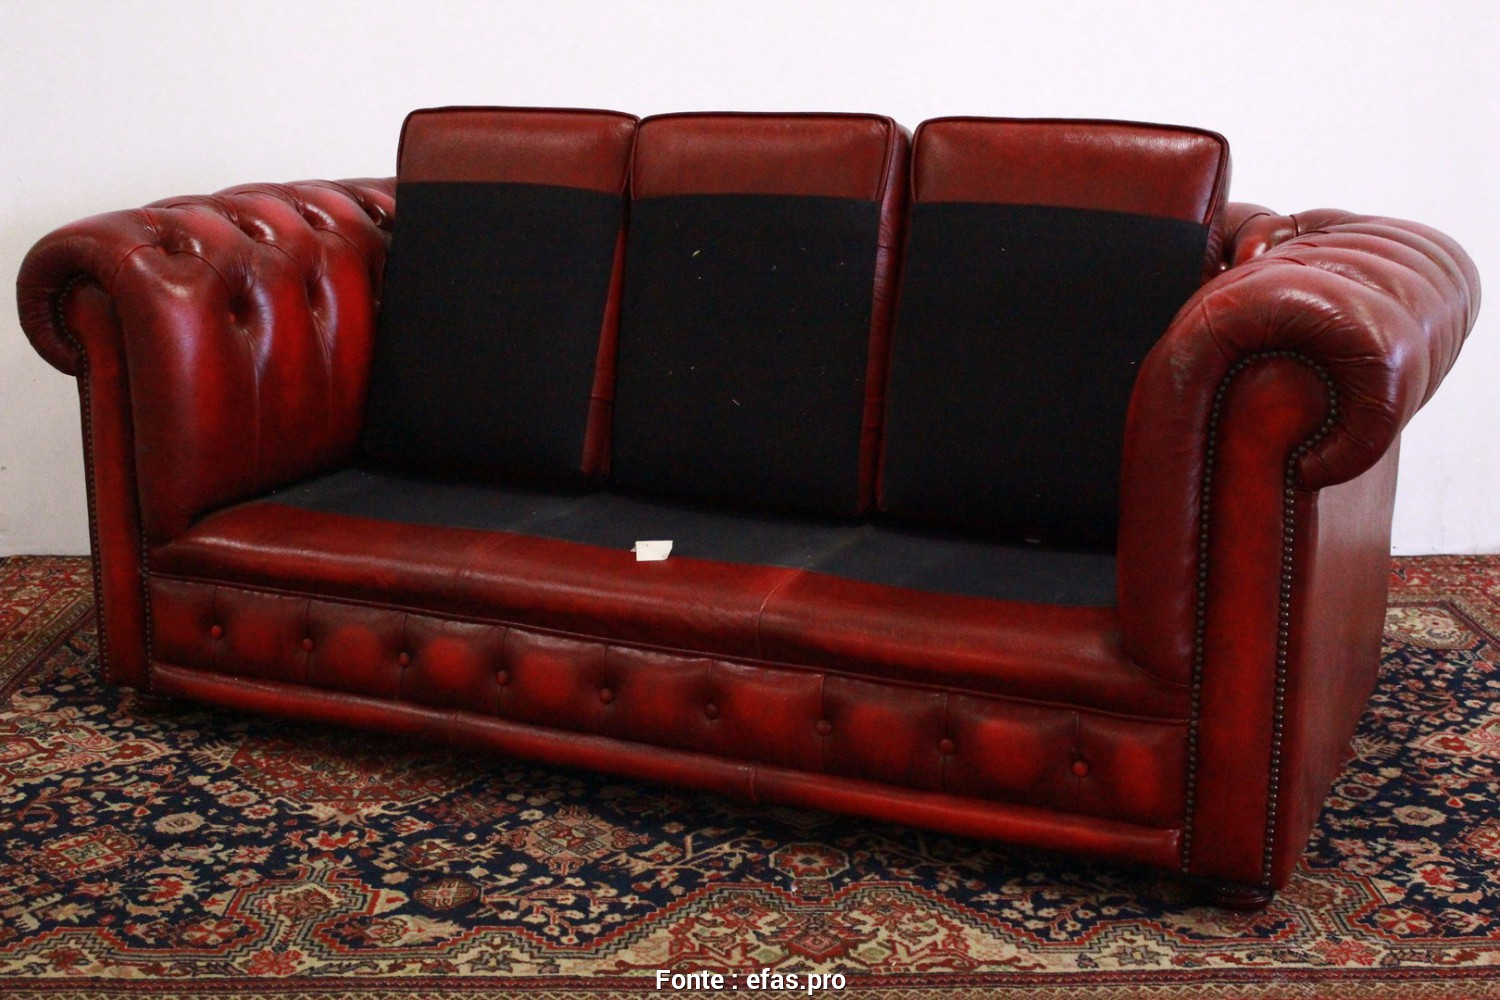 Divano Chesterfield Replica, Bello Divano Chesterfield Club 3 Posti Bordeaux, U2013 Divani Originali